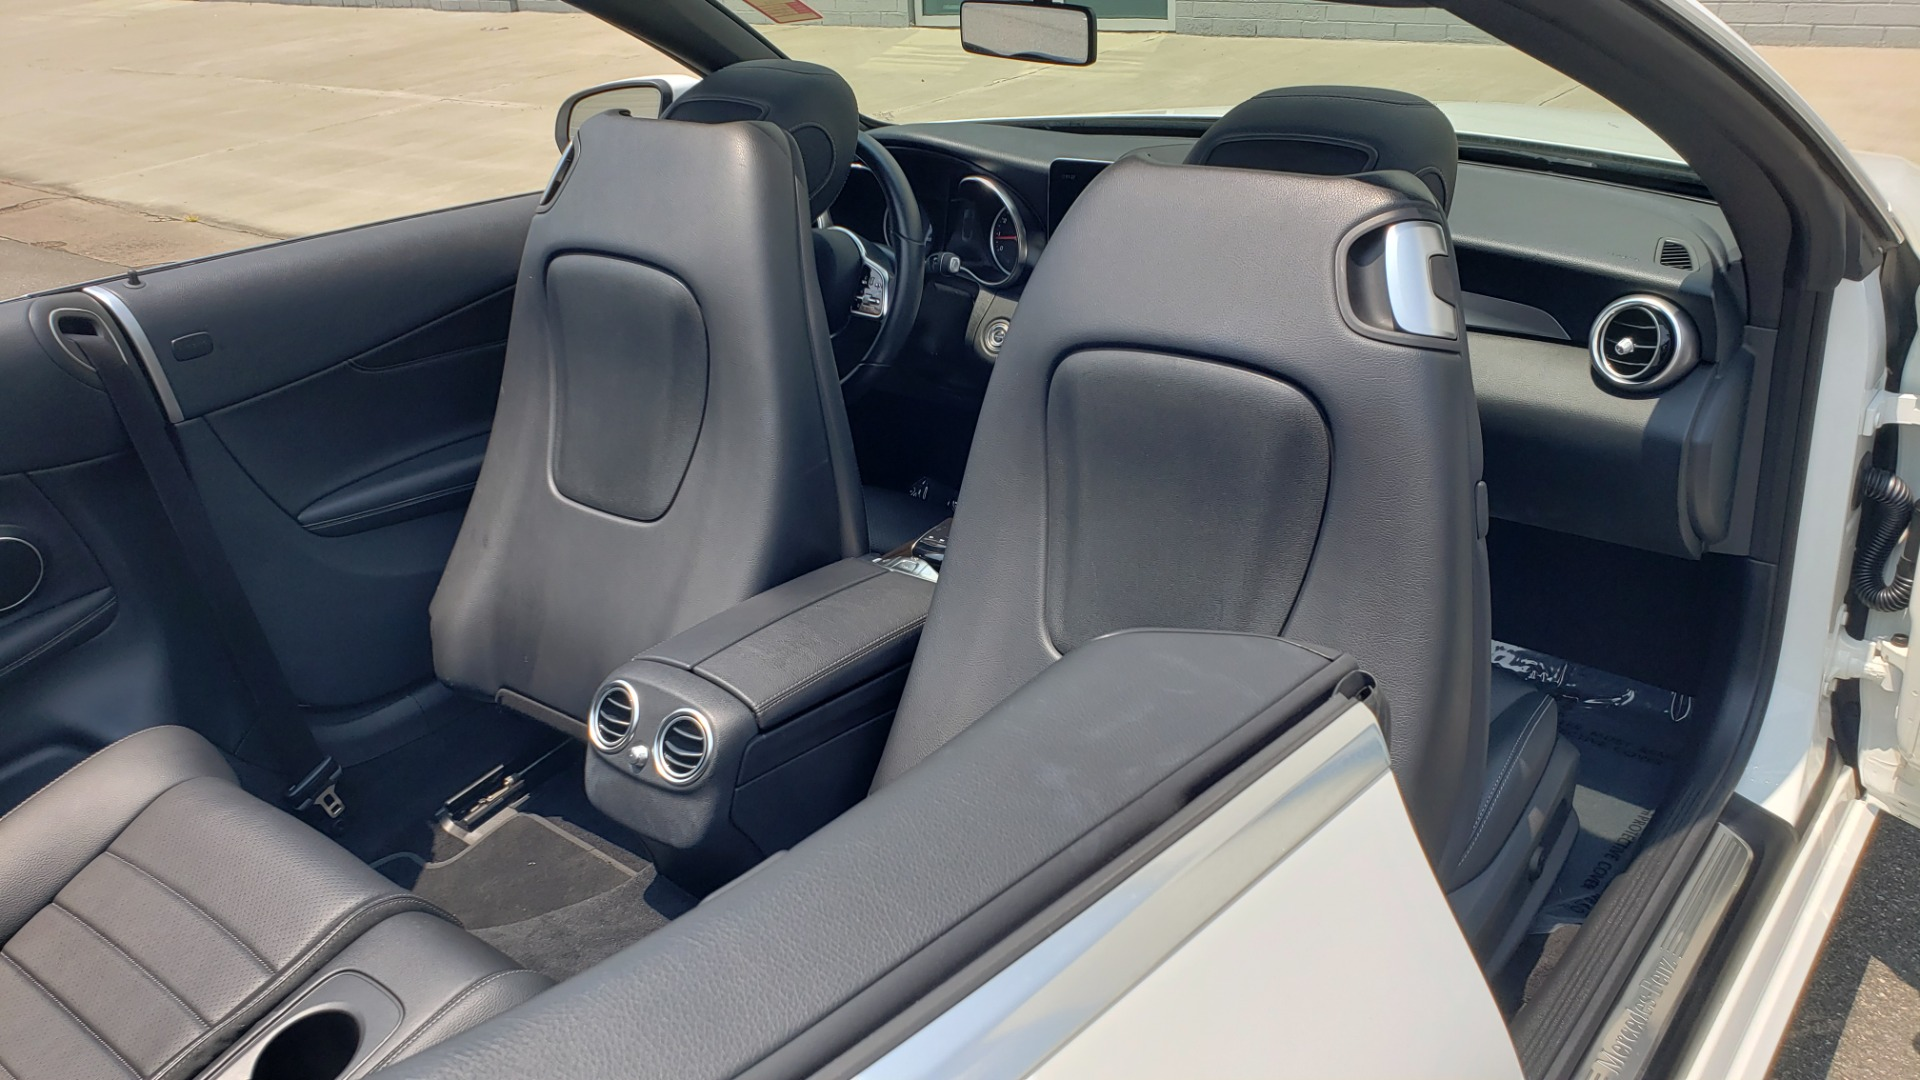 Used 2019 Mercedes-Benz C-CLASS C 300 CABRIOLET 2.0L / AUTO / NAV / HD RADIO / REARVIEW for sale $46,995 at Formula Imports in Charlotte NC 28227 35